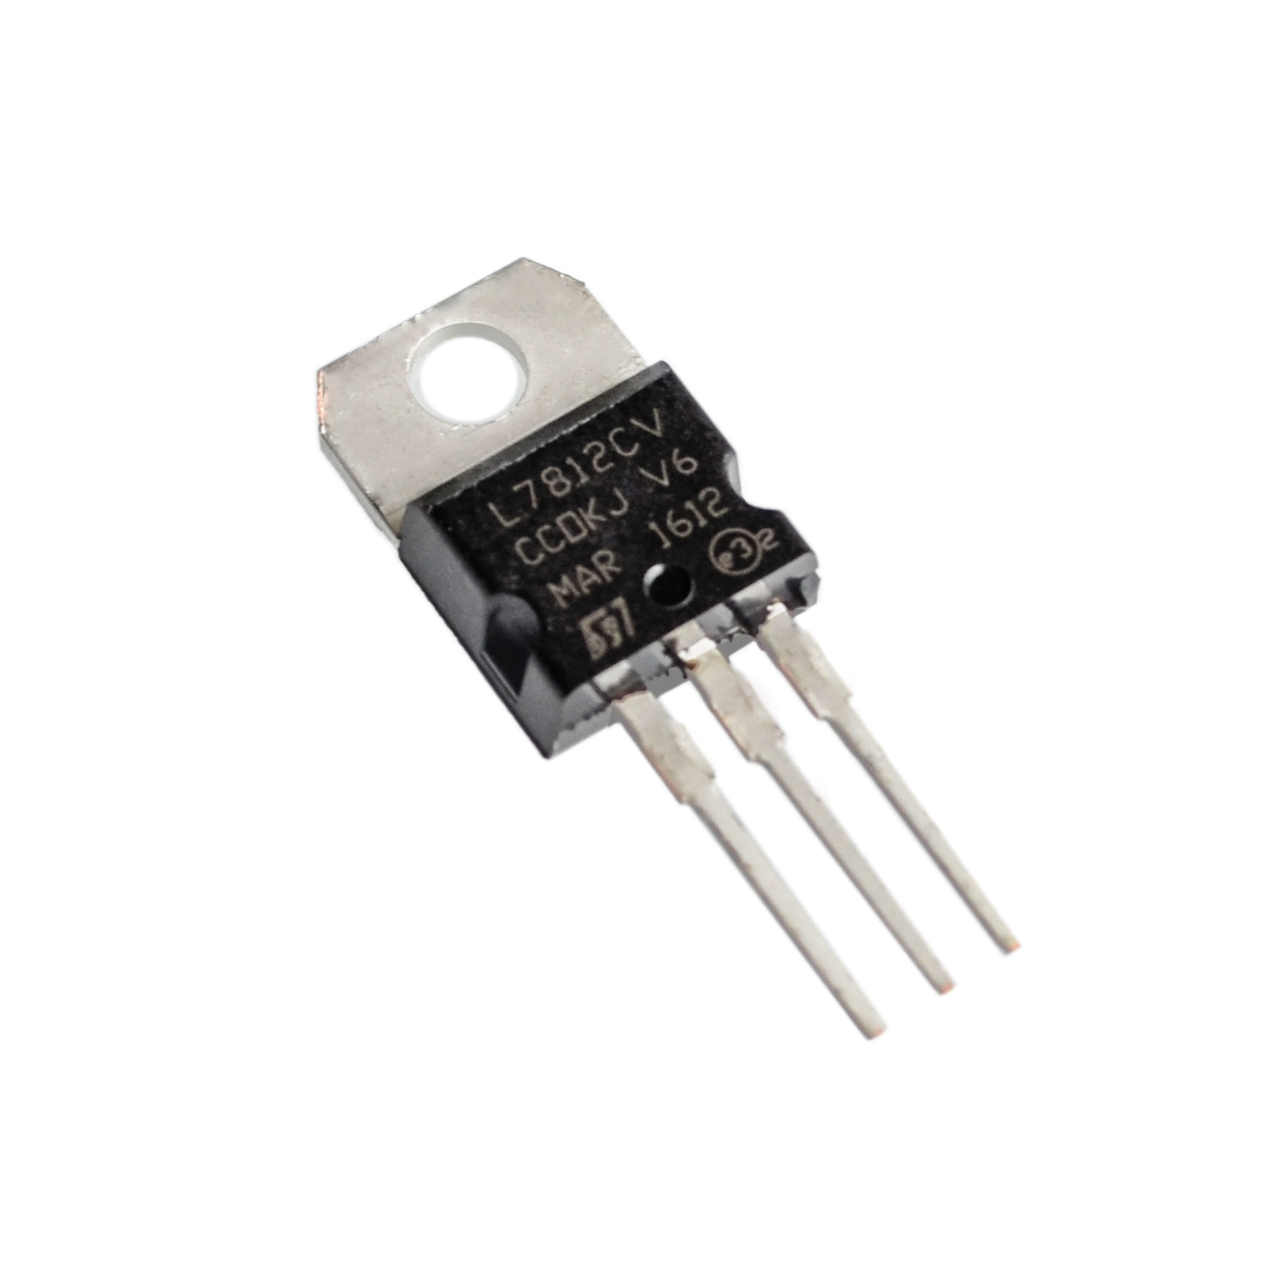 New Good Quality L7812cv 7812 L7812 To 220 12v Positive Voltage Lm7812 Lm7912 Circuit 10pcs Regulators